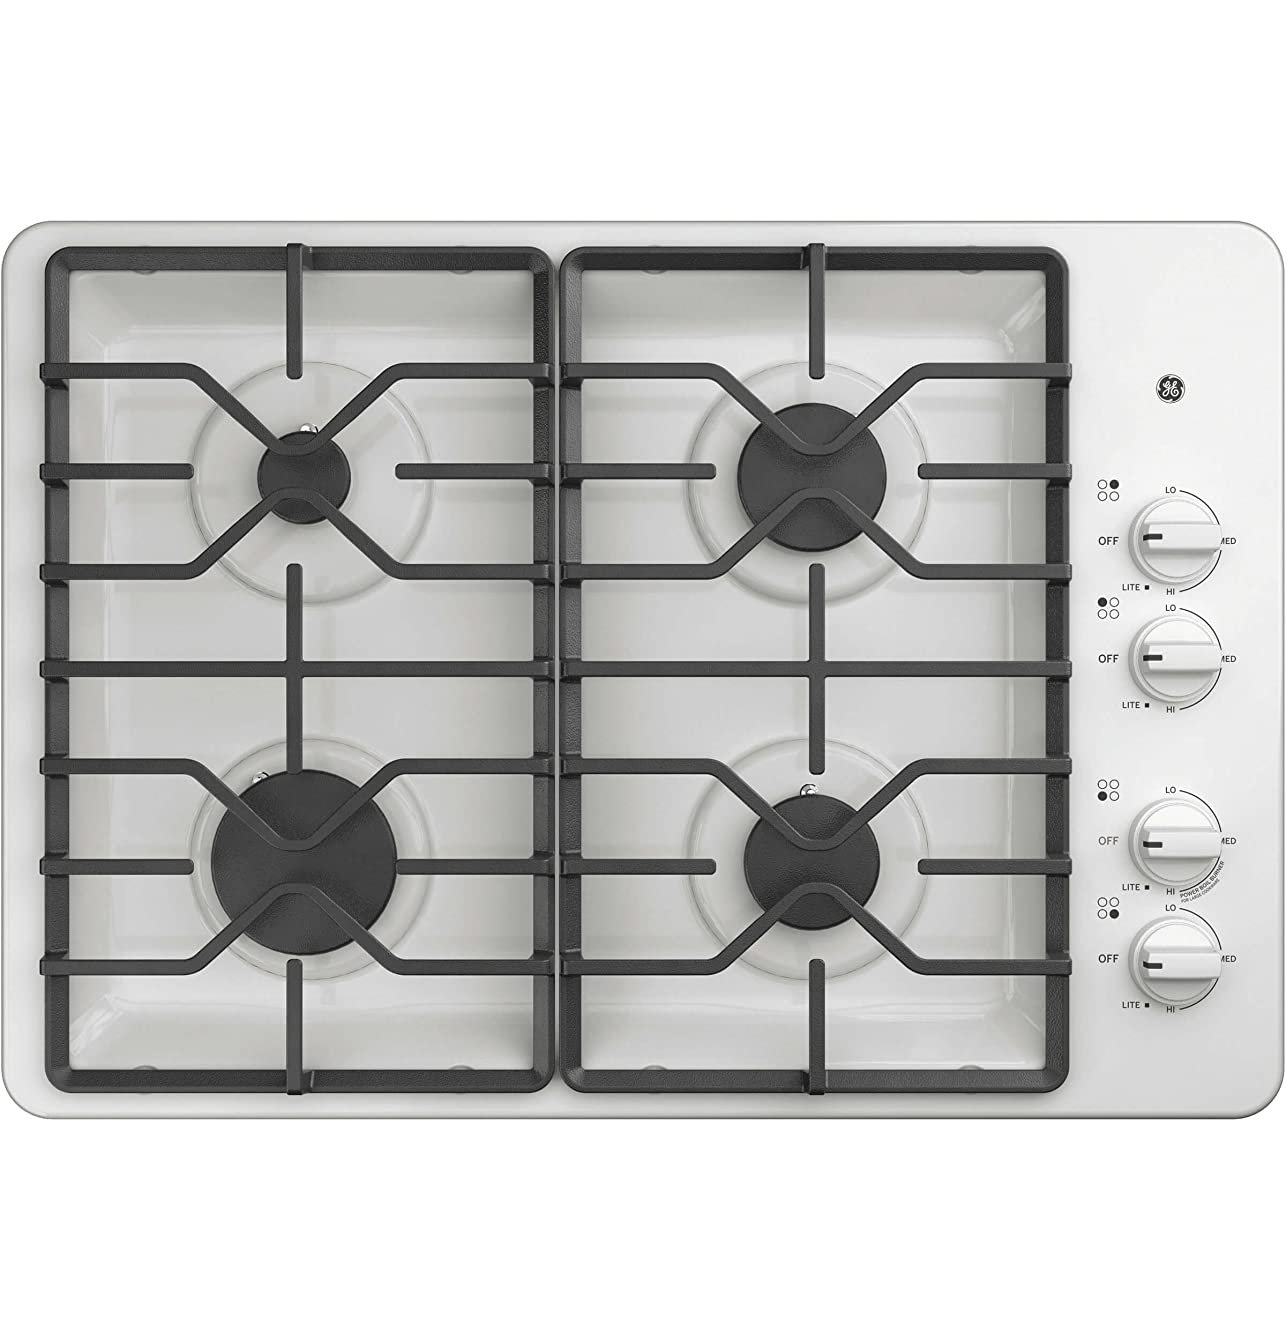 GE JGP3030DLWW 30 Inch Gas Cooktop with MAX System, Power Broil, Simmer, Continuous Grates, Sealed Burners and ADA Compliant